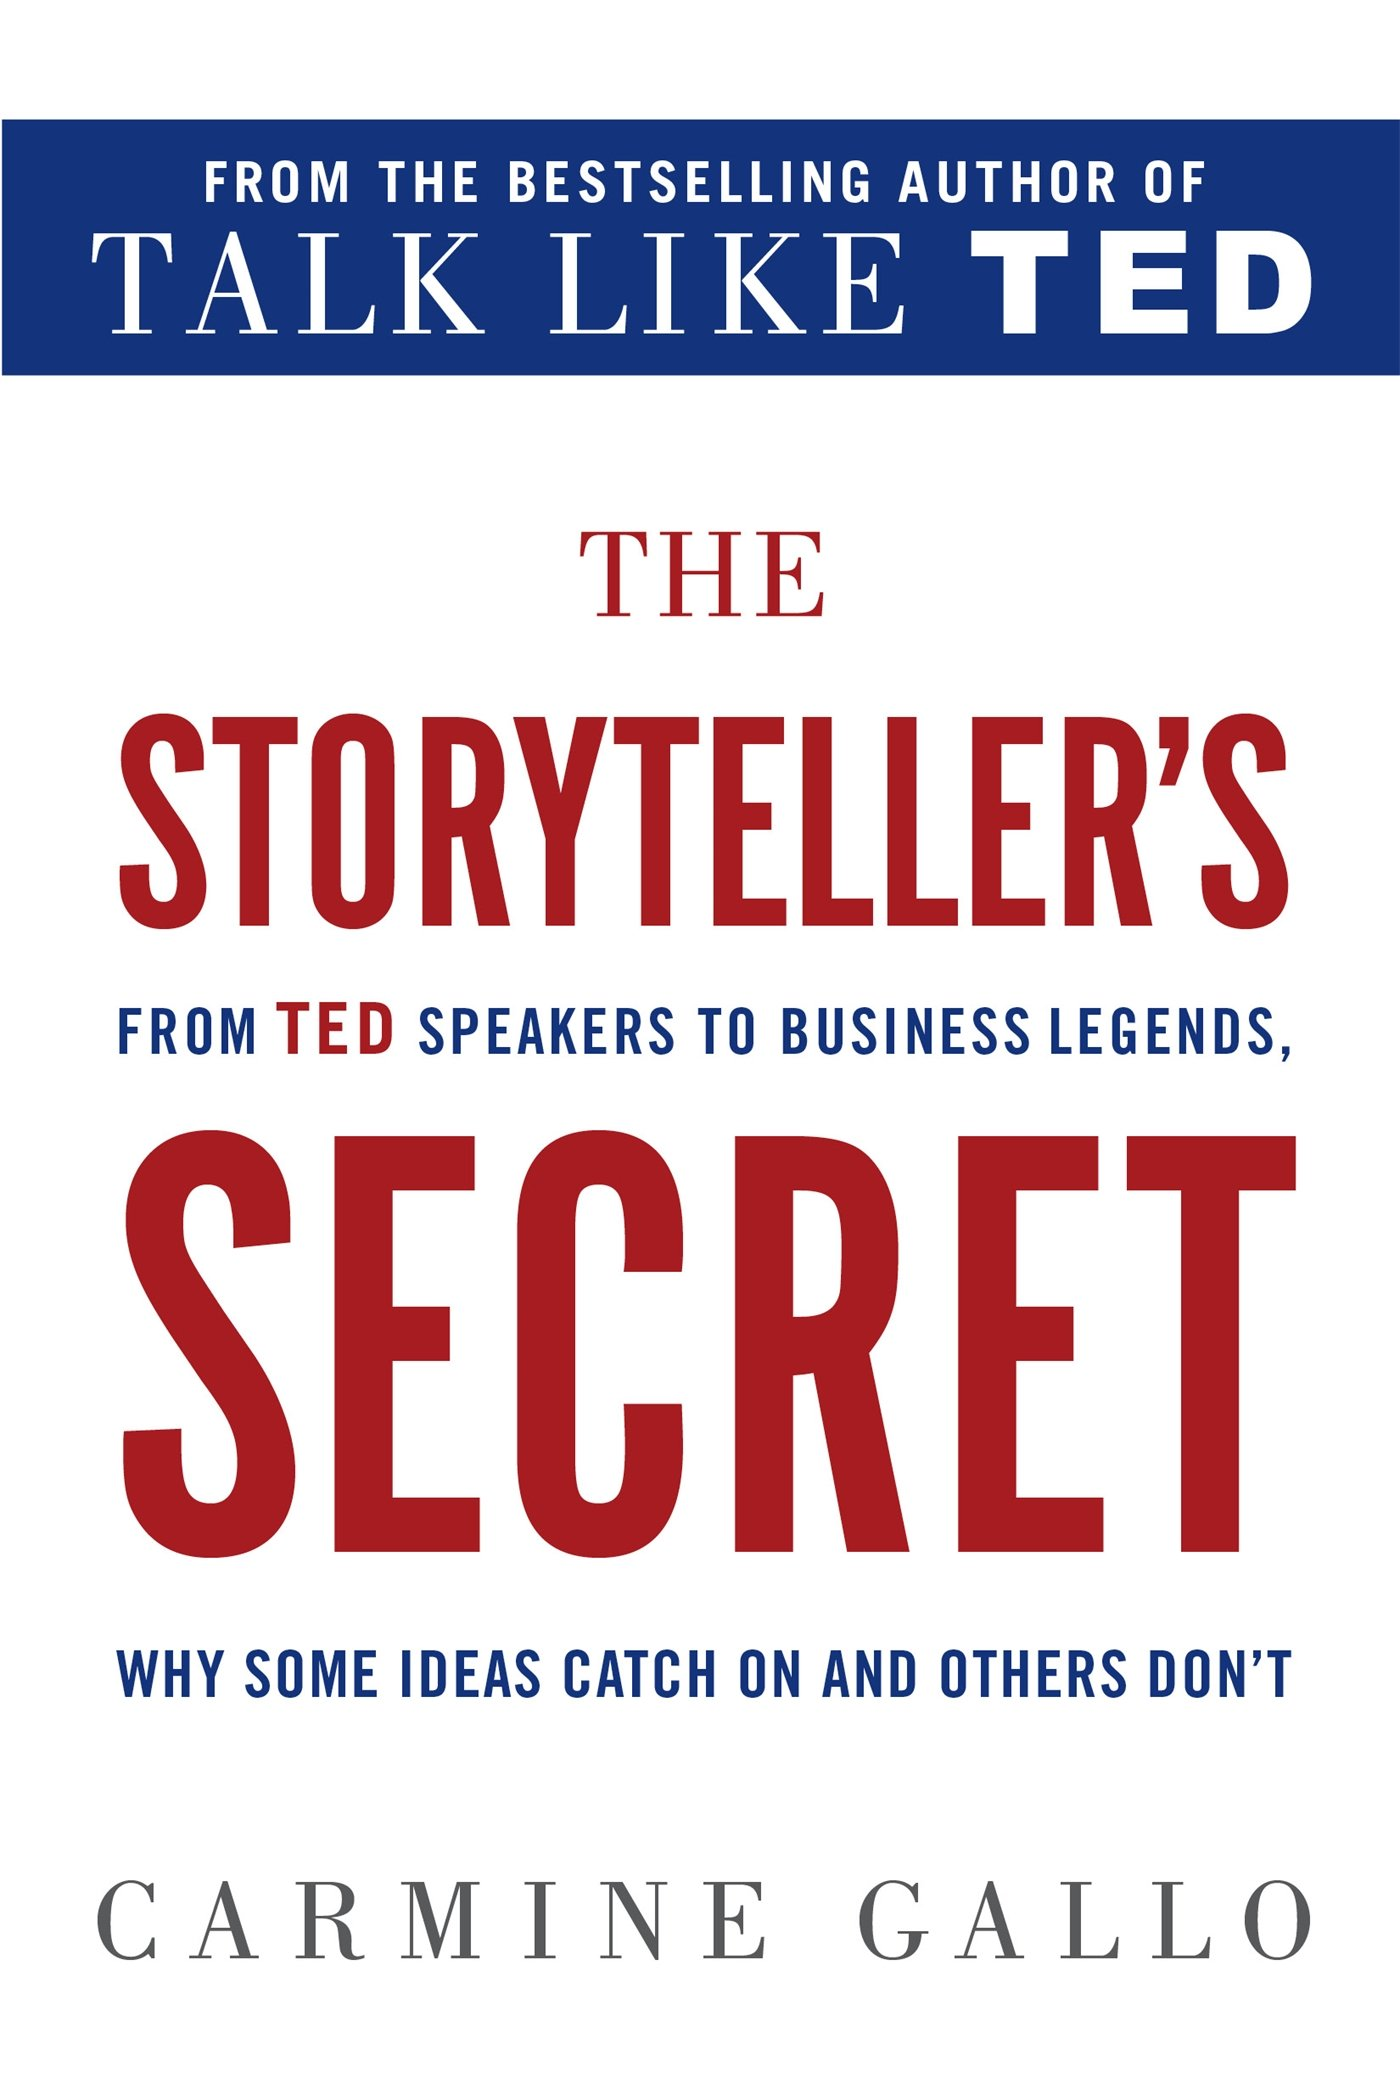 Image result for The Storyteller's Secret: From TED Speakers to Business Legends, Why Some Ideas Catch On and Others Don't